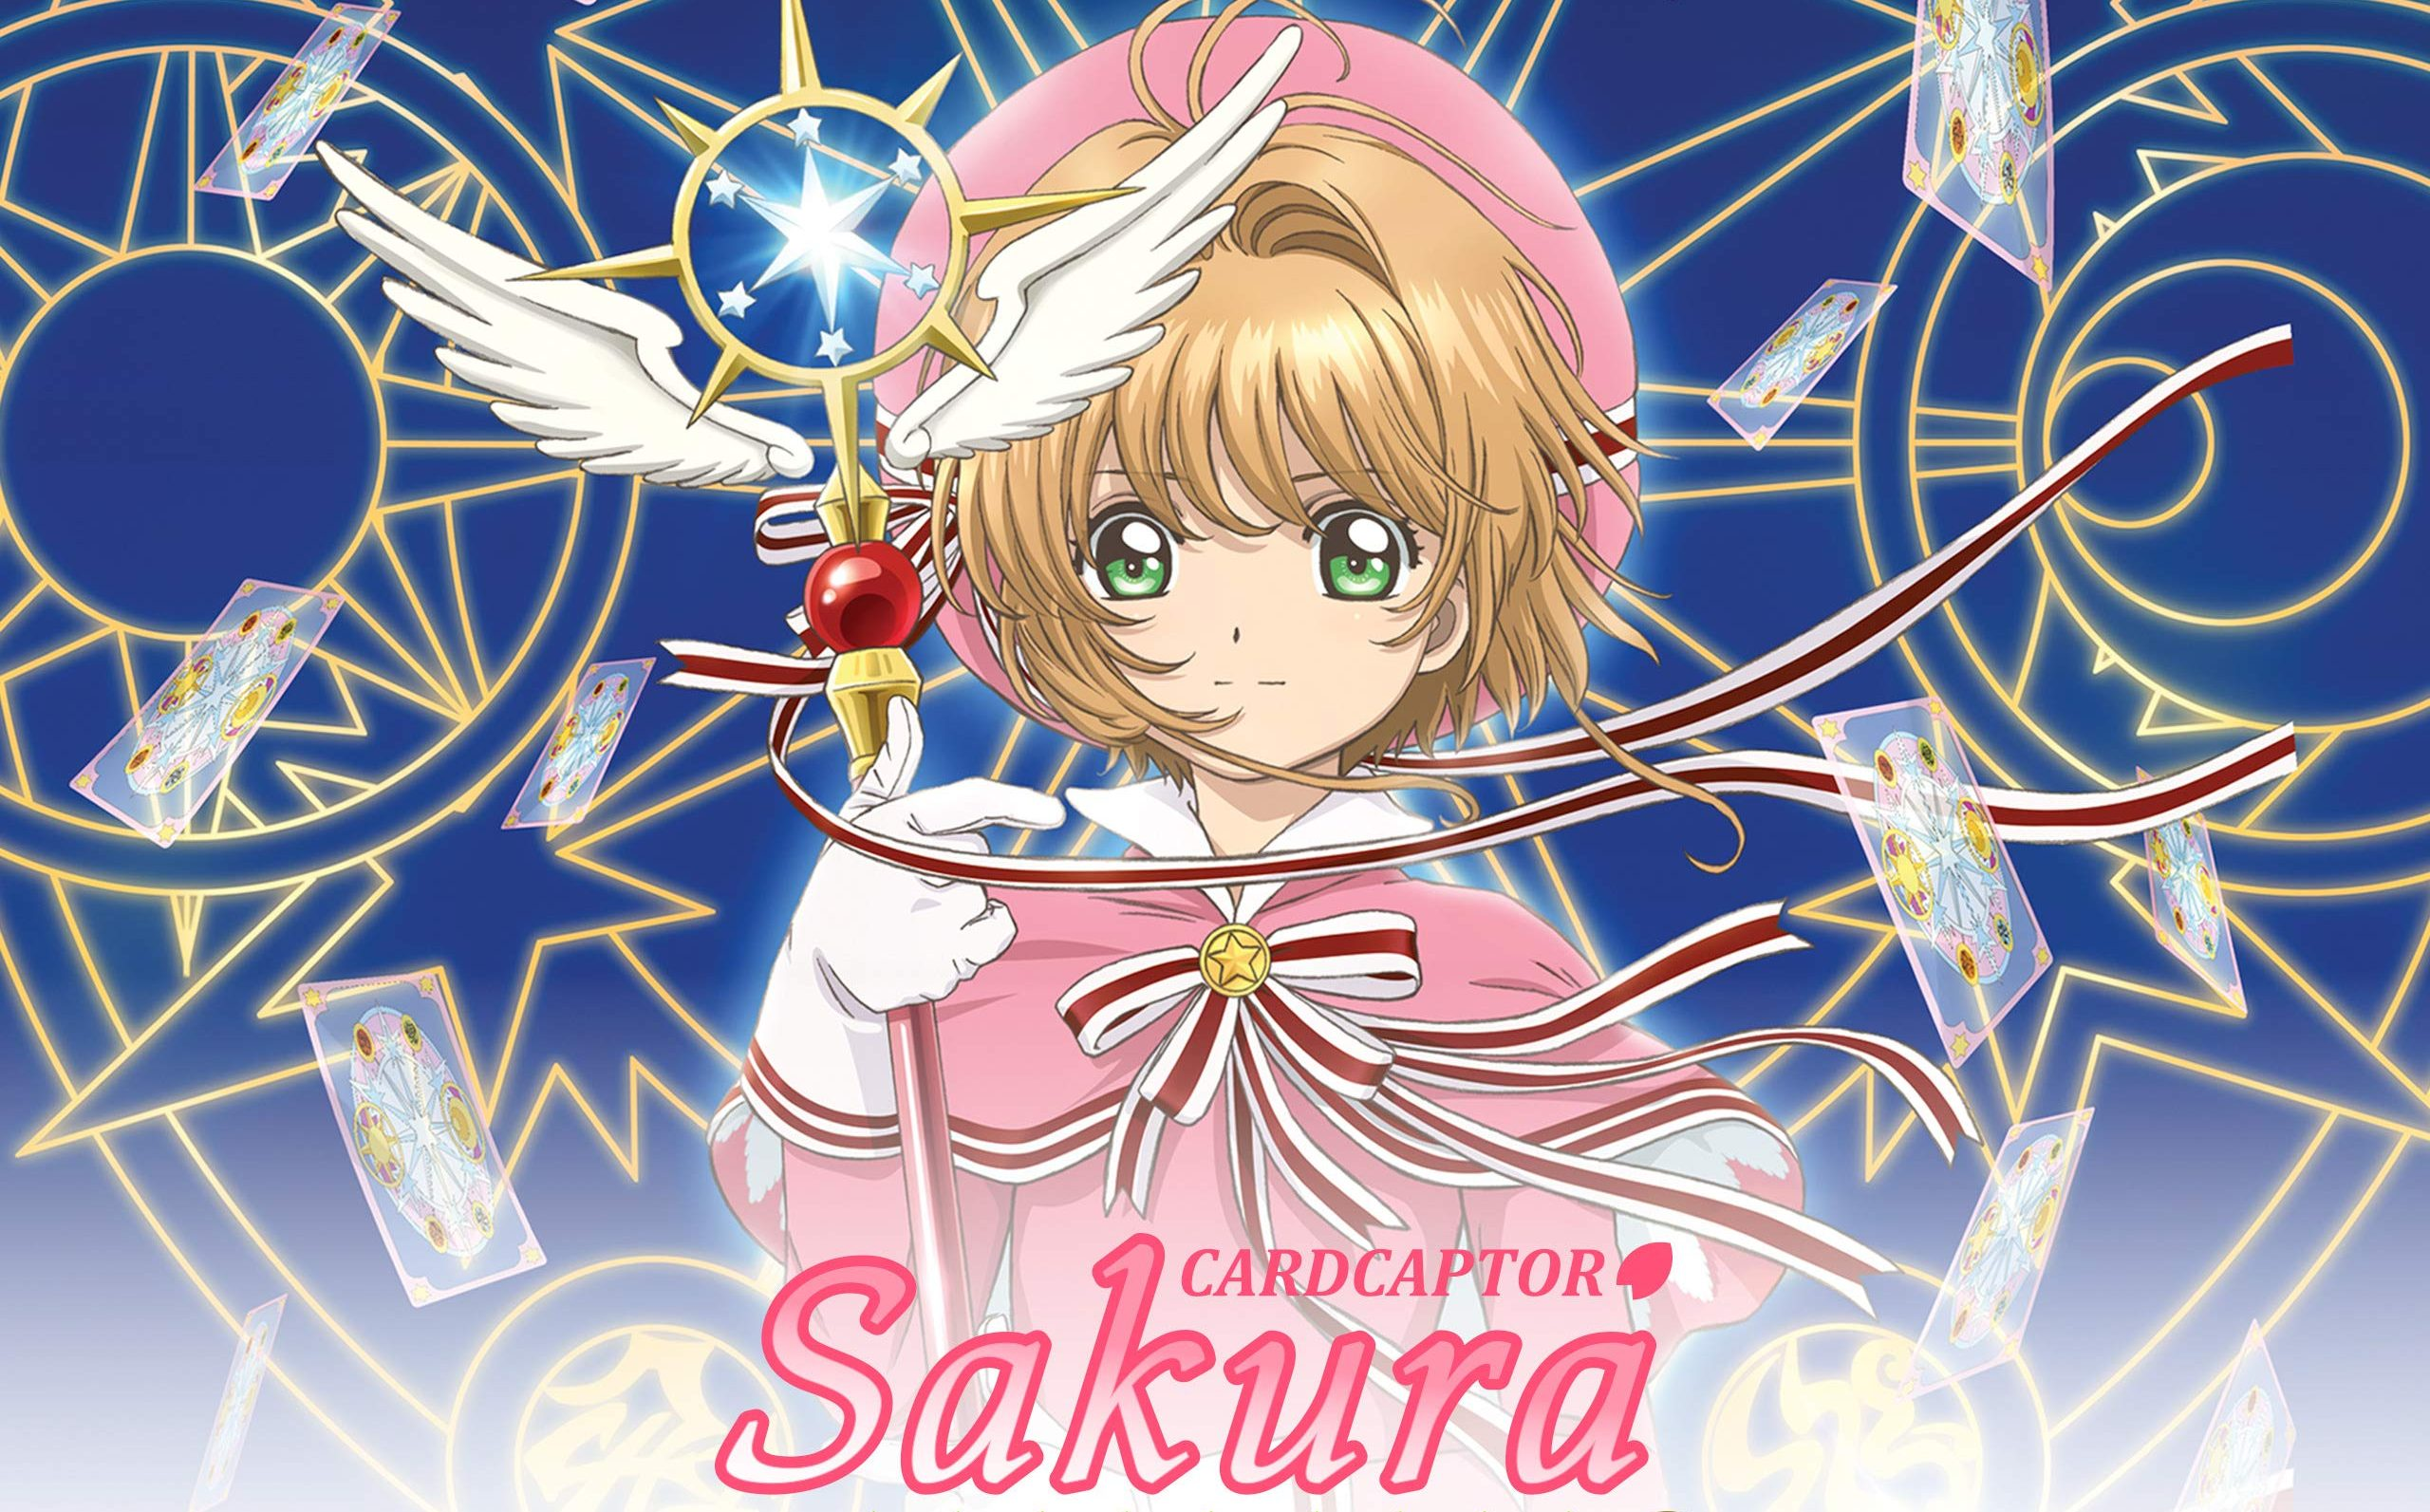 New Cardcaptor Sakura manga by CLAMP to also get adapted into an anime